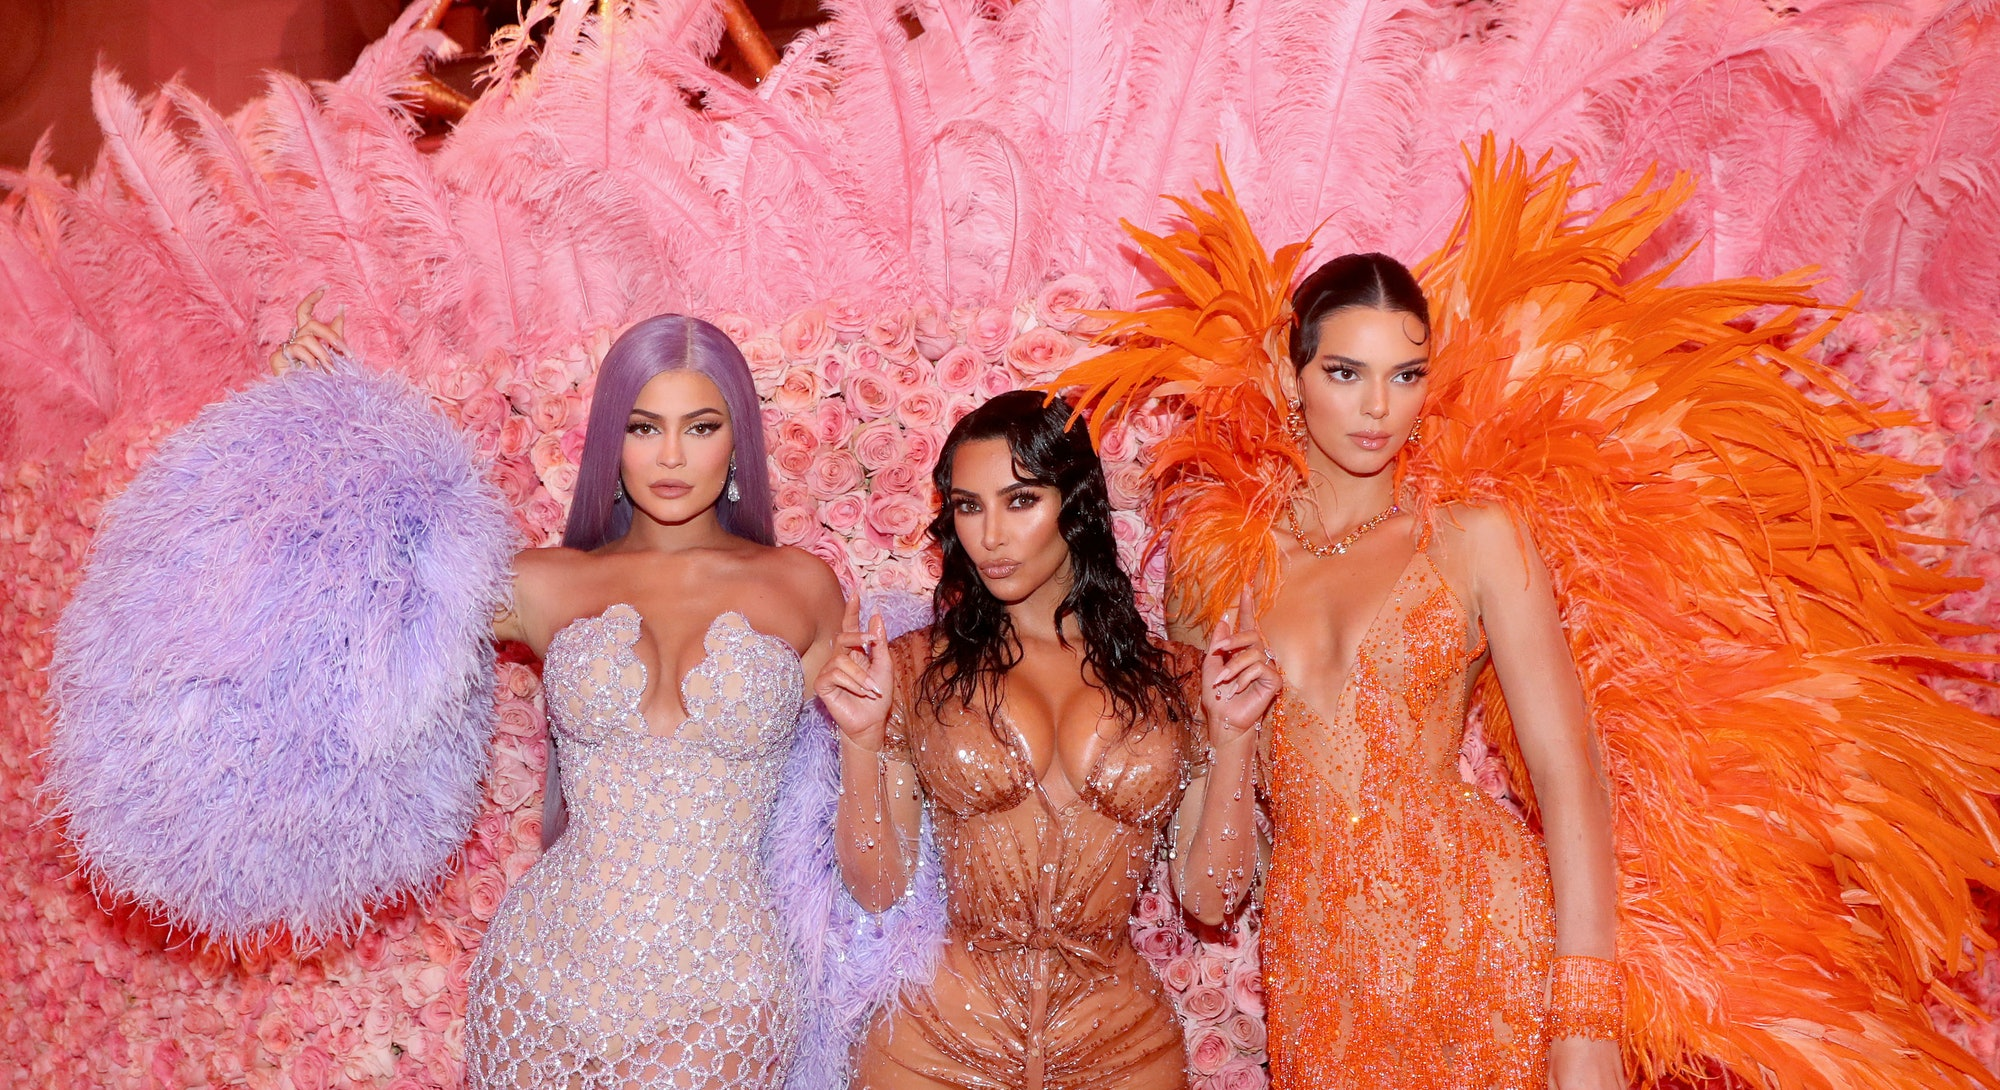 Kylie Jenner, Kim Kardashian West, and Kendall Jenner attend the 2019 Met Gala.